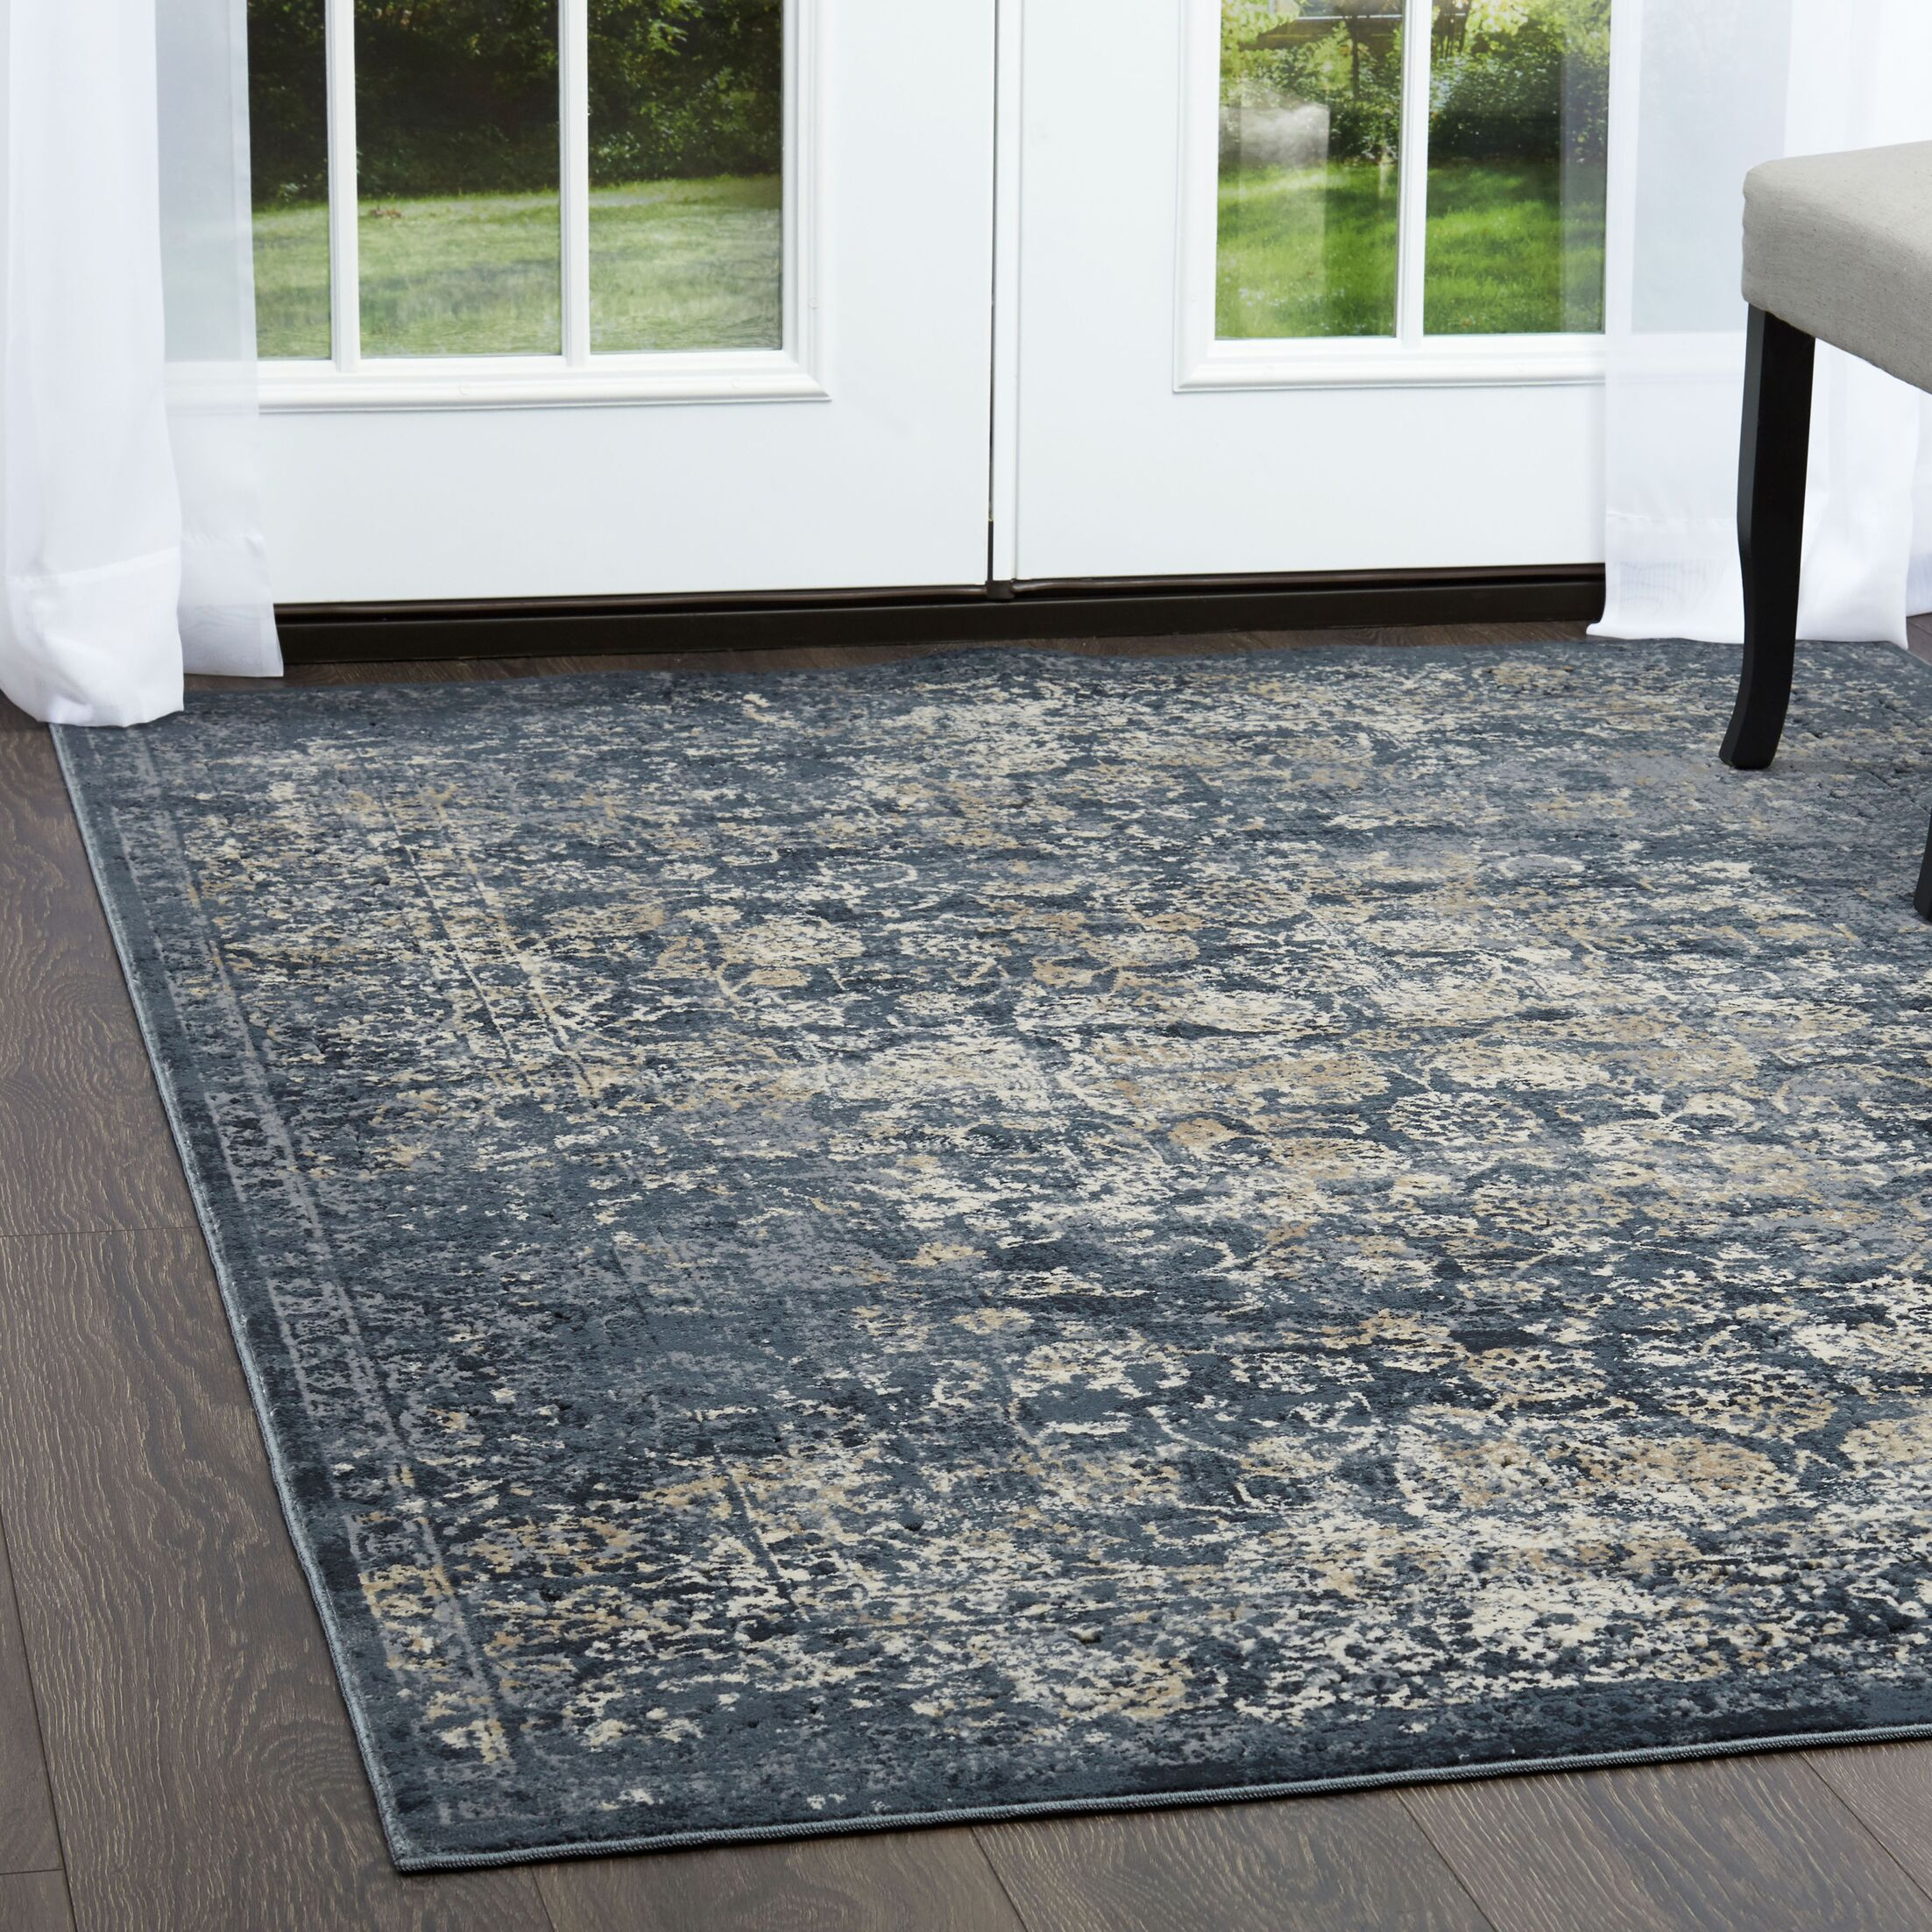 Nicole Miller Palmer Moadi Gray Area Rug Rug Size: Rectangle 5'3